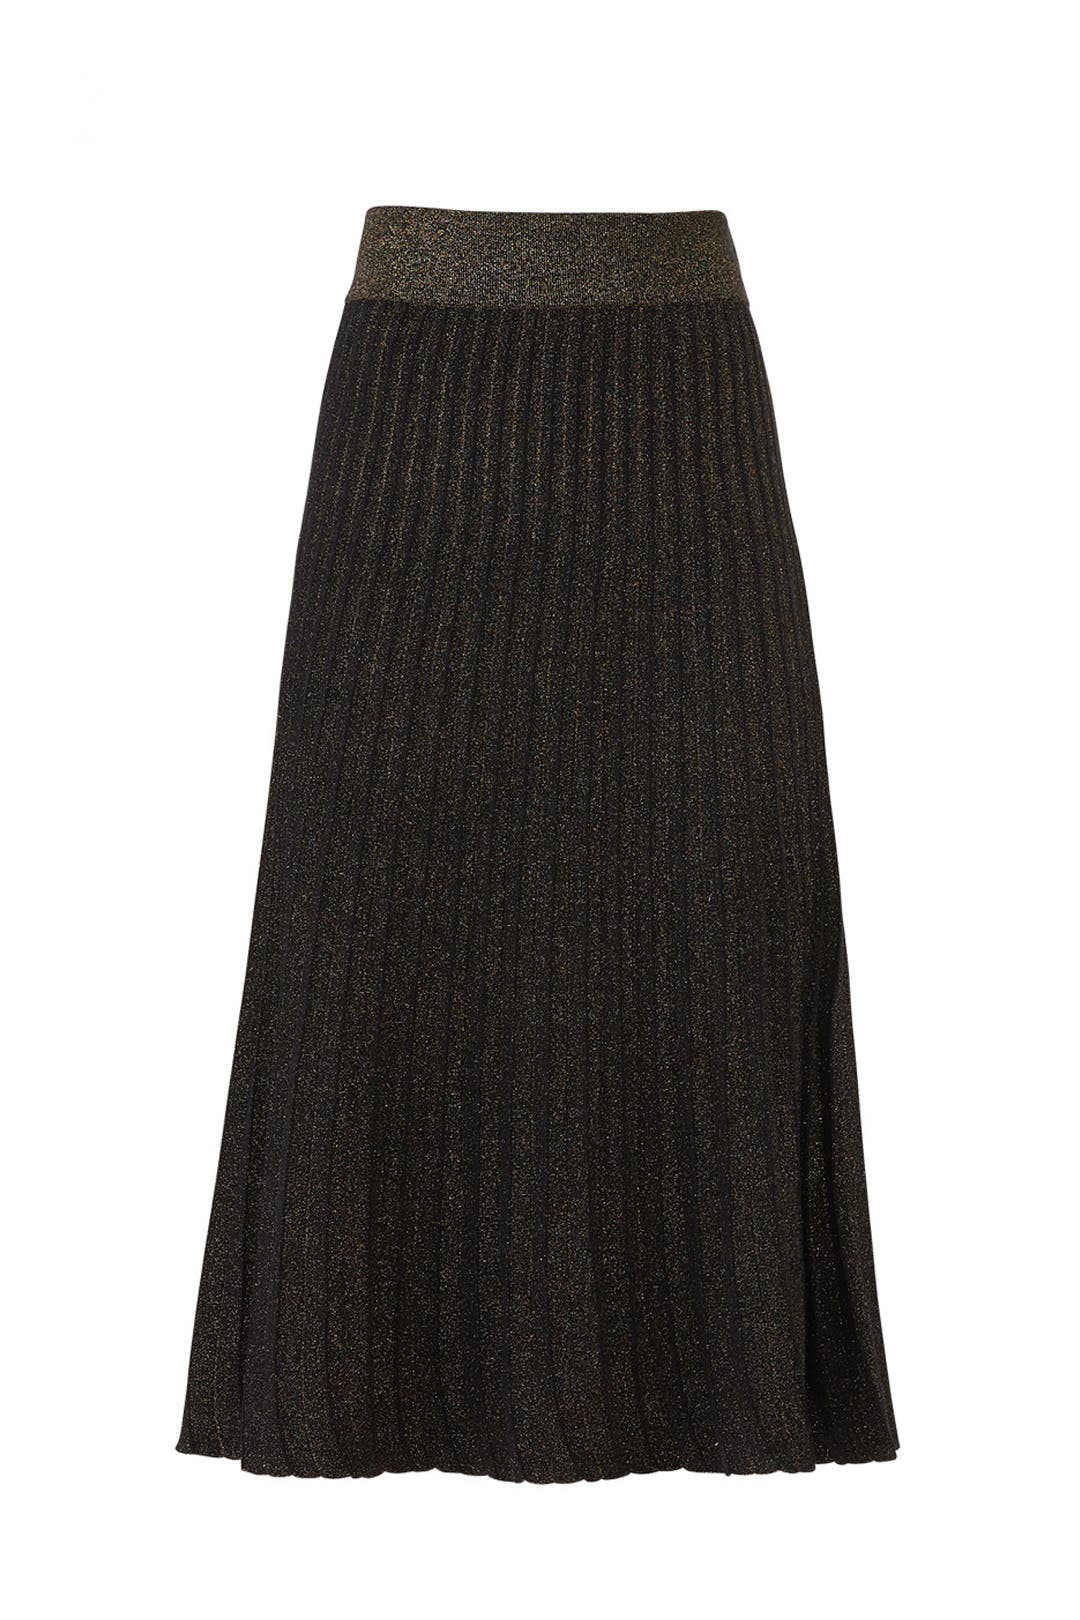 b9179930fbd2 Neal Pleated Knit Skirt by A.L.C. for $70 | Rent the Runway